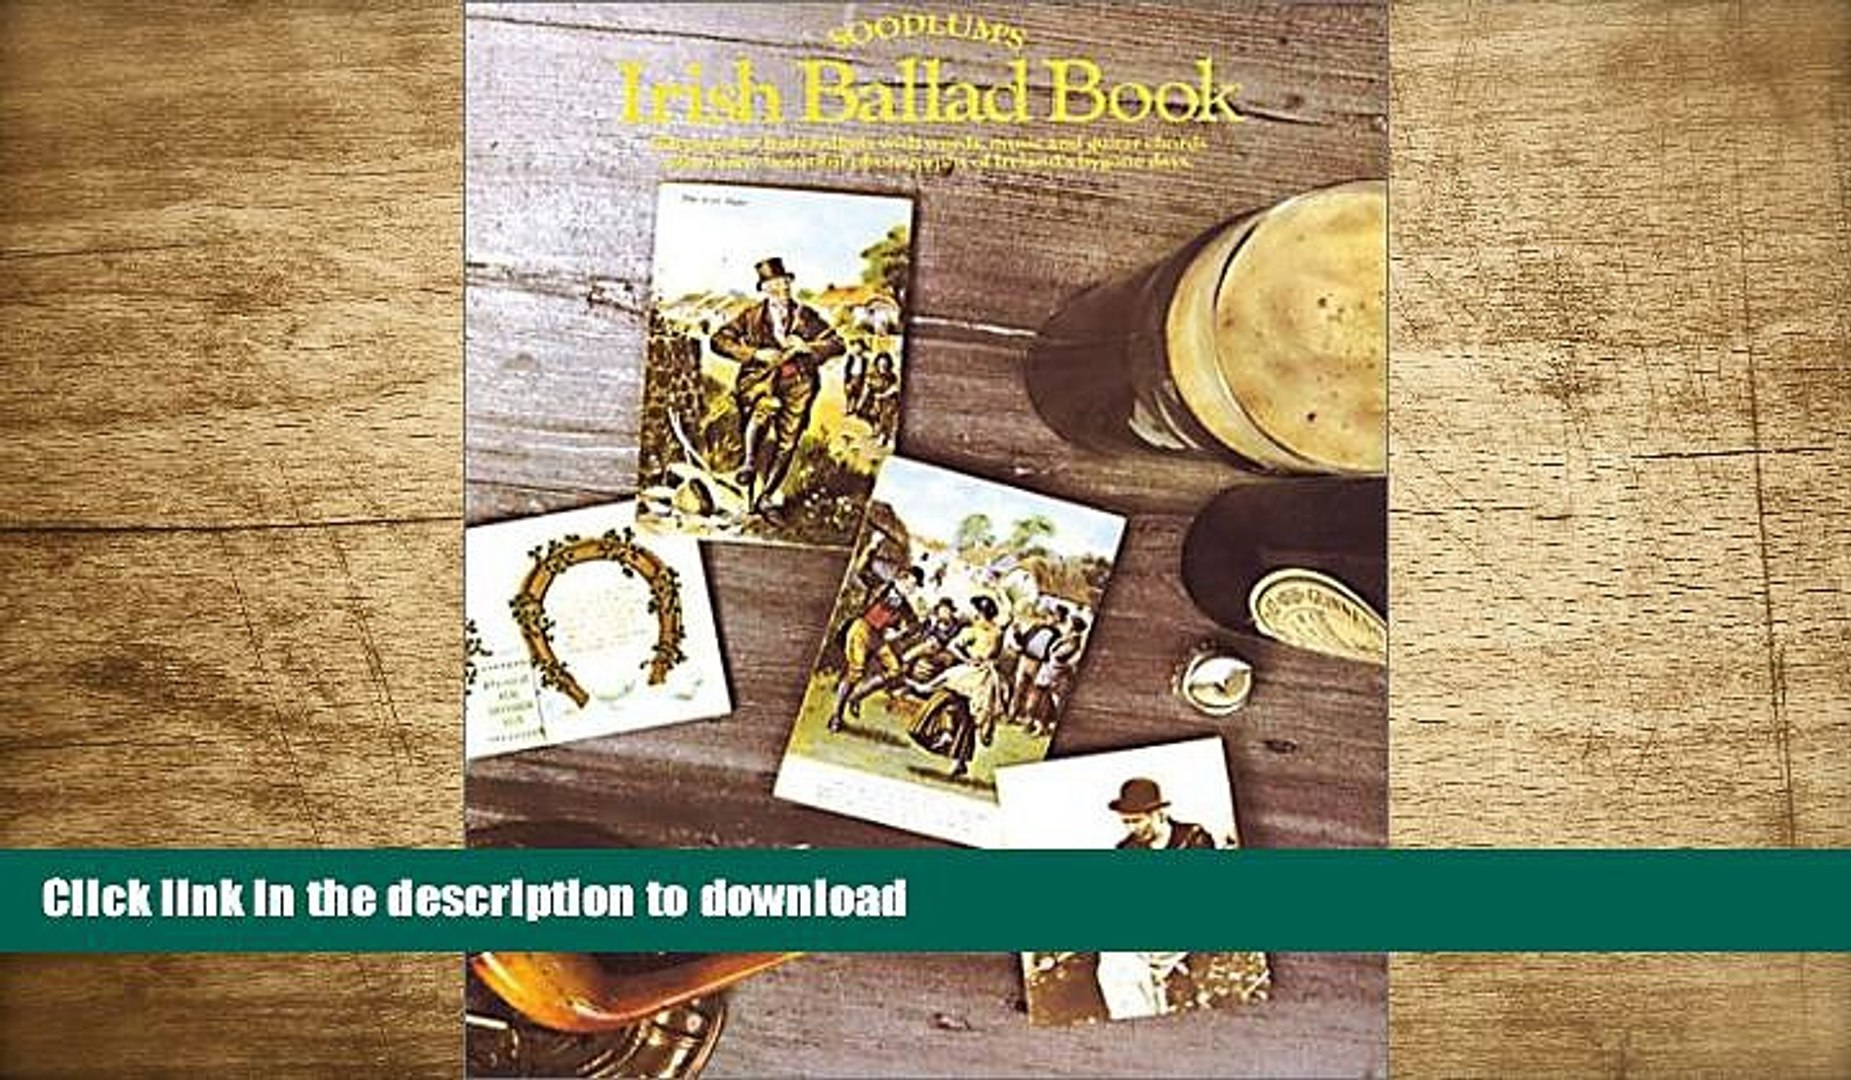 FREE [DOWNLOAD] Soodlum s Irish Ballads Book (Vocal Songbooks)  For Kindle